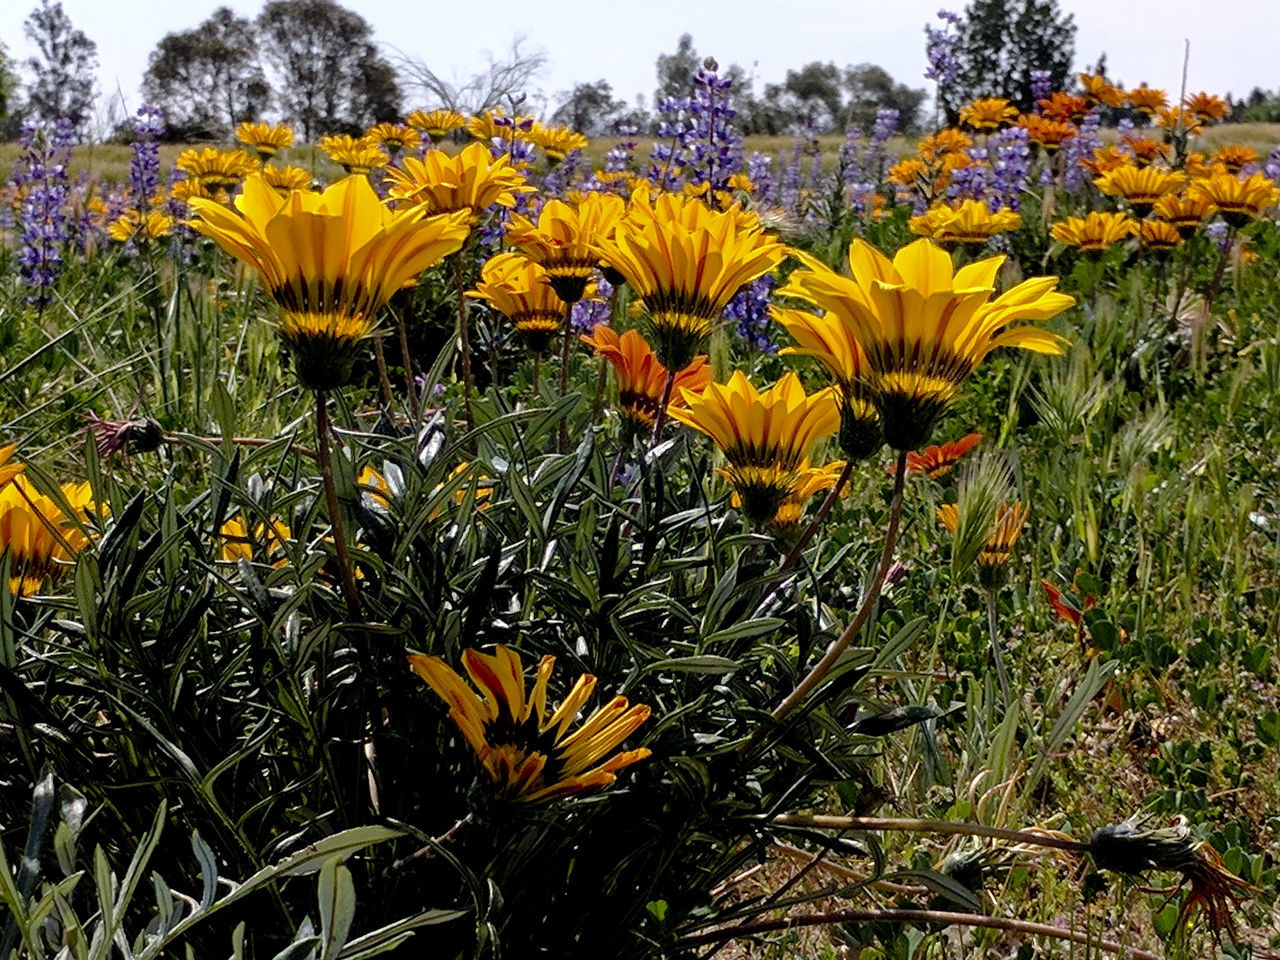 Looking up and across a field of yellow, orange and purple wildflowers Beauty In Nature Black-eyed Susan Blooming Close-up Day Field Of Flowers Flower Flower Head Fragility Freshness Growth Nature No People Orange Flowers Outdoors Petal Plant Purple Flowers Spring Sunflower Wildflower Wildflowers Wildflowers In Bloom Yellow Yellow Flowers